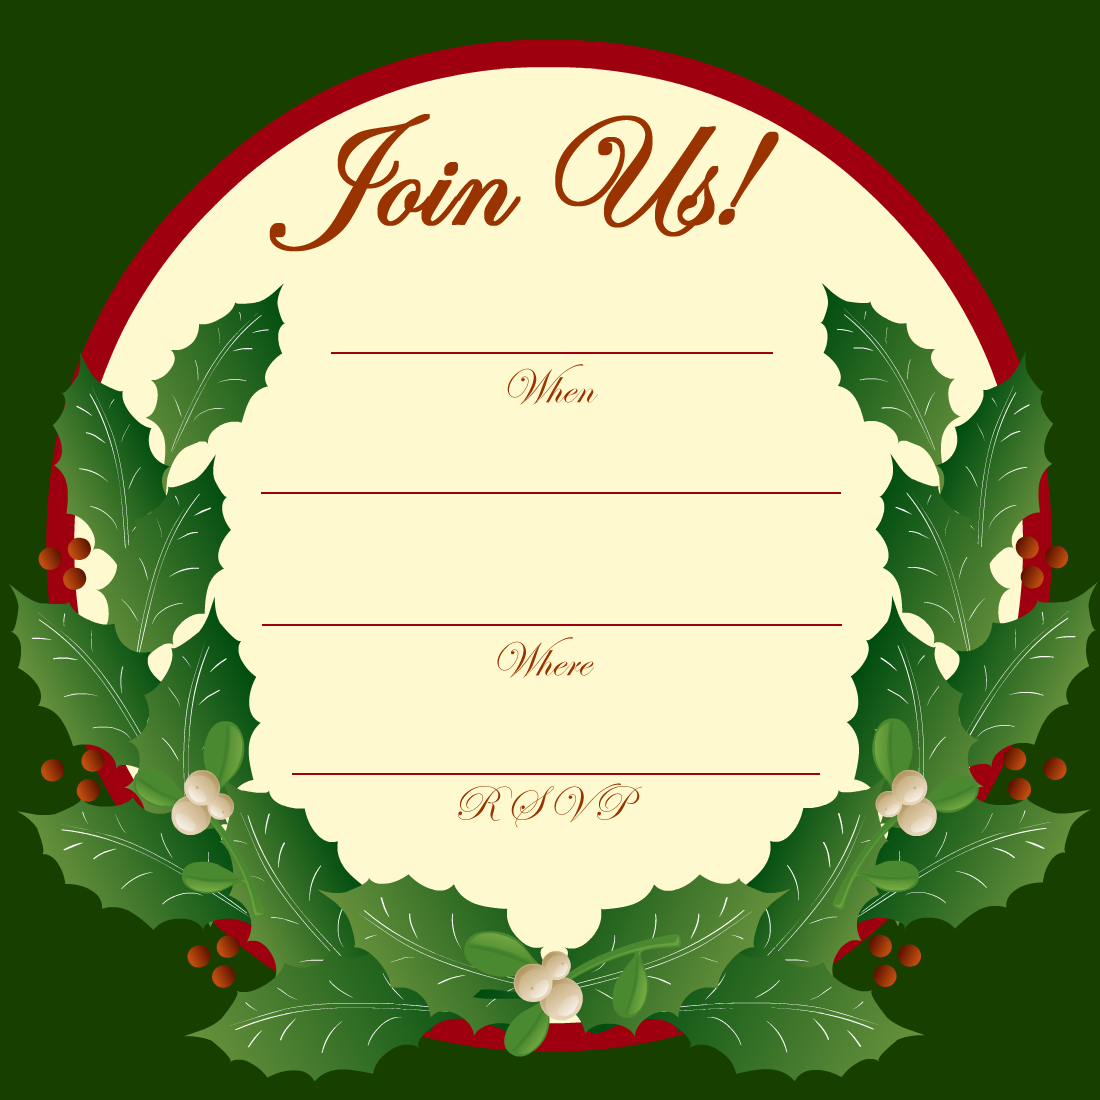 Christmas wallpapers and images and photos christmas party invitations wallpaperschristmas for Free holiday invite templates